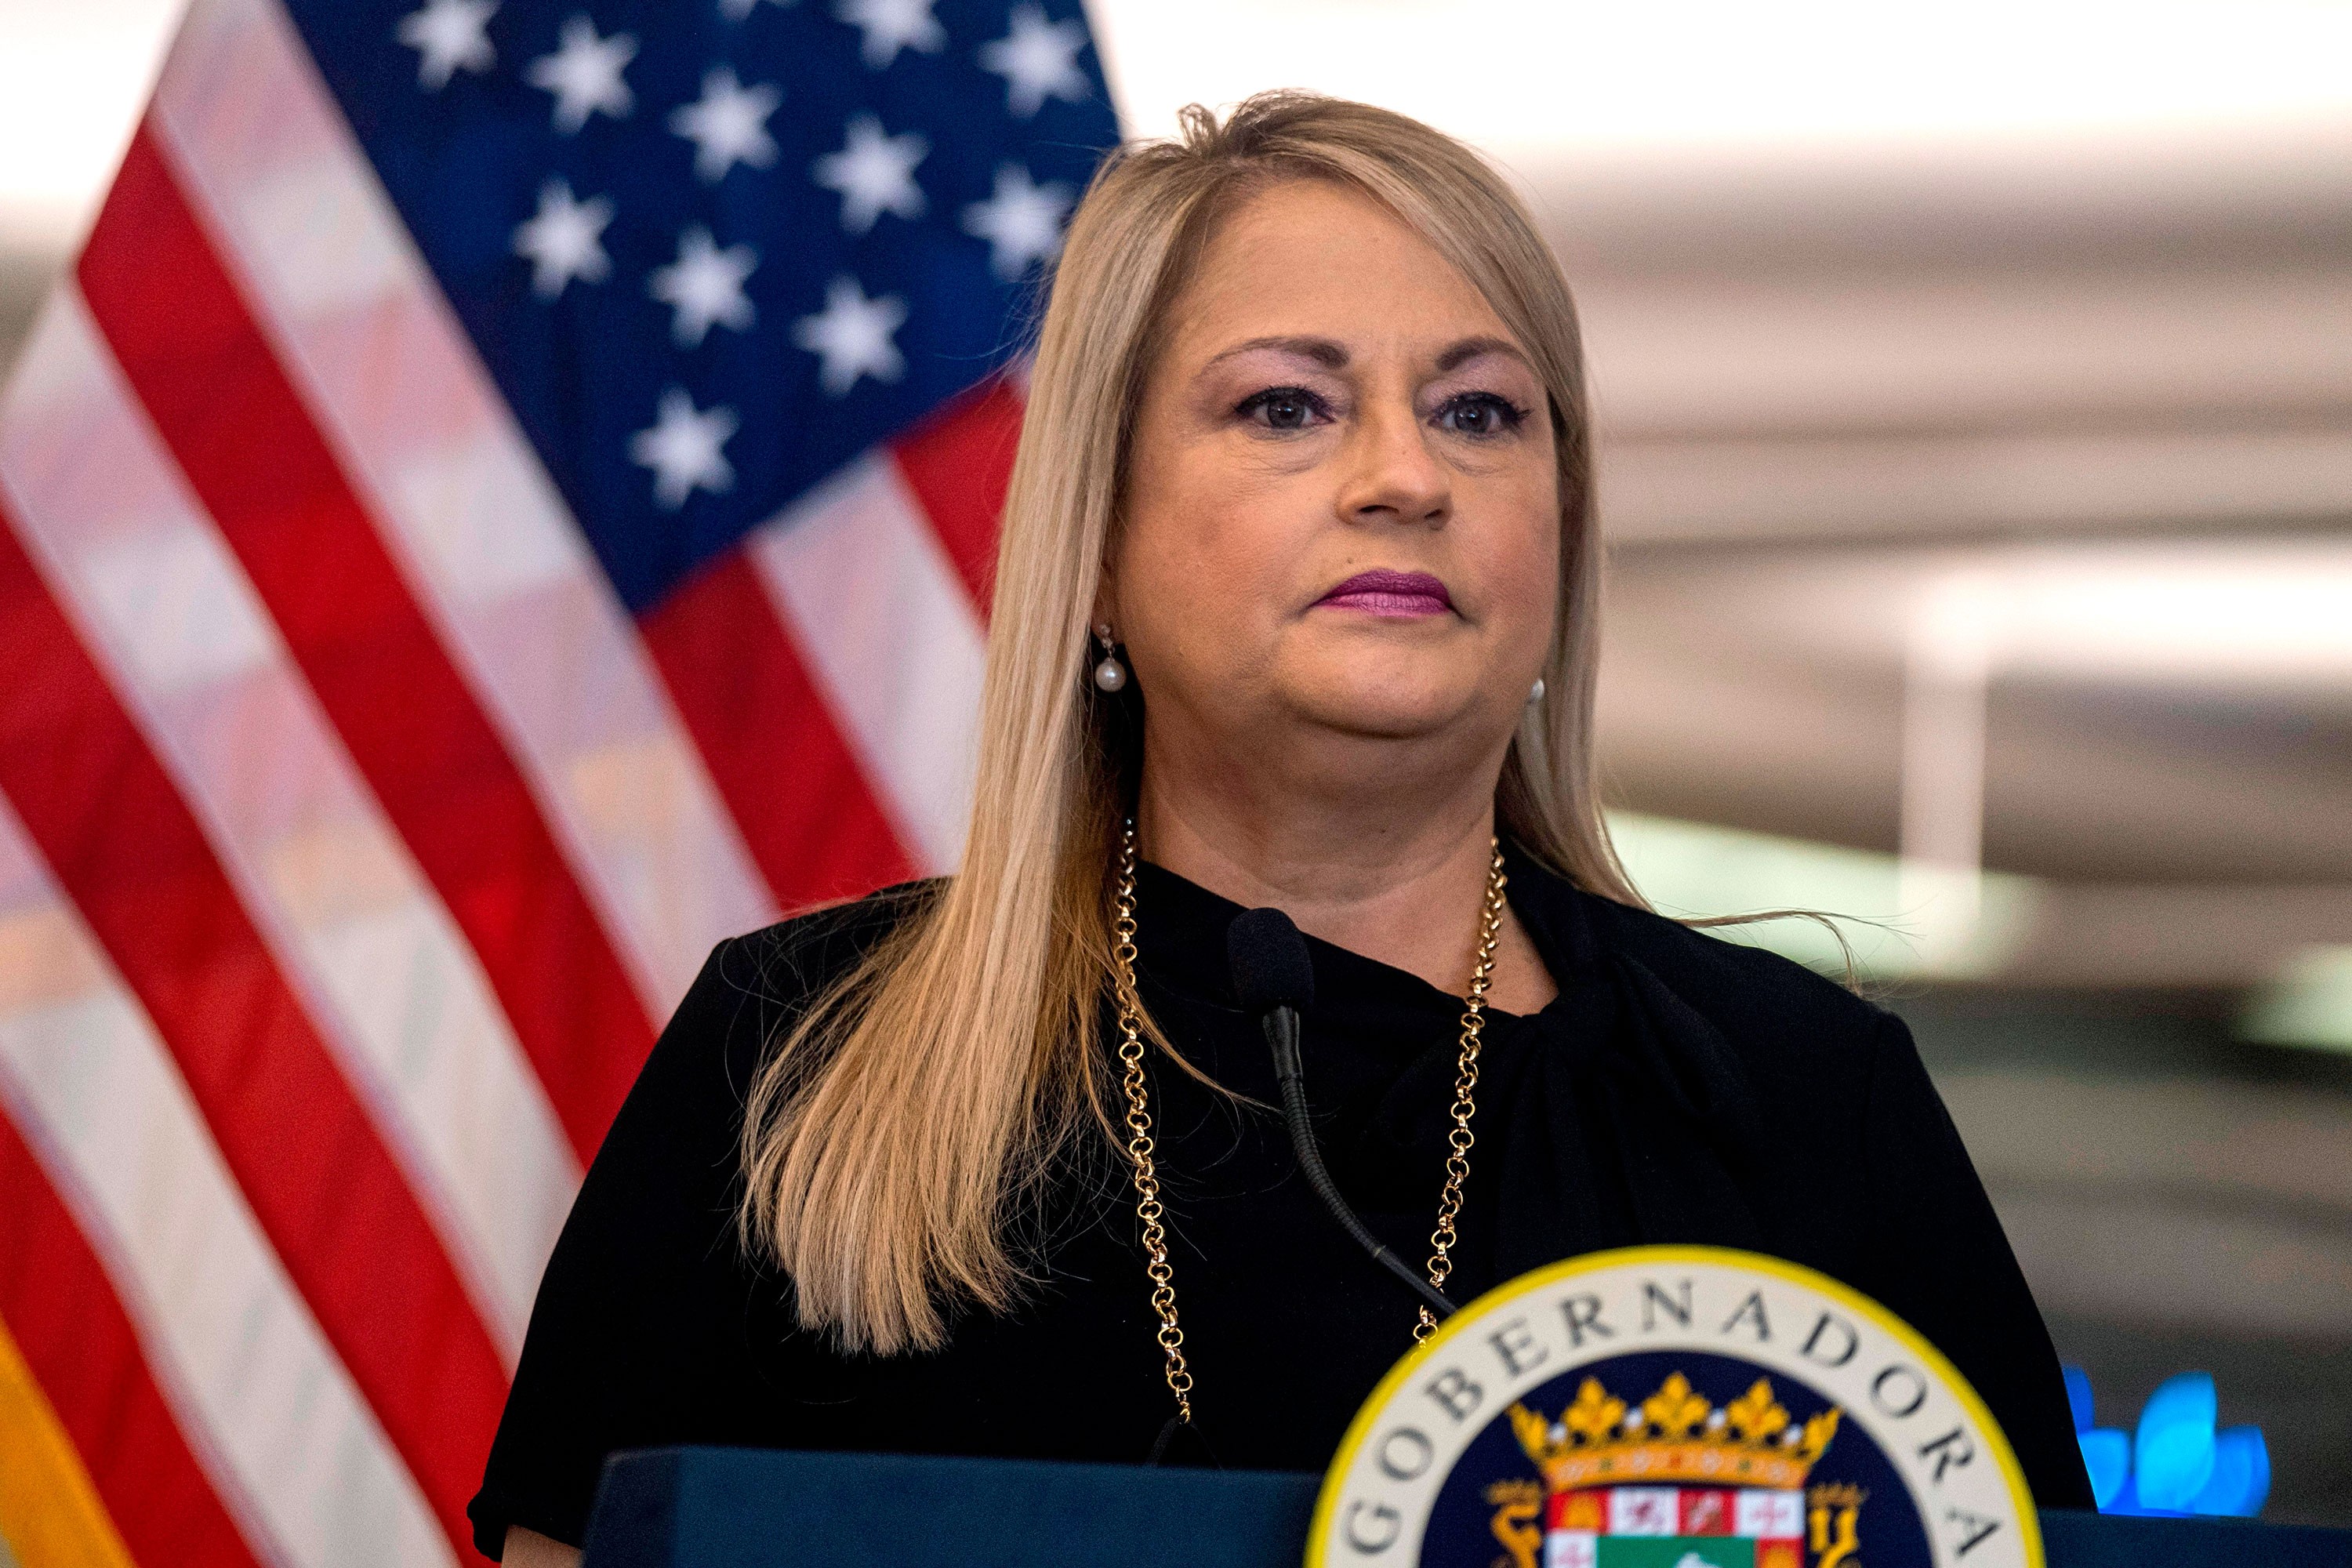 Puerto Rico Governor Wanda Vazquez Garced speaks during a press conference on June 30 in San Juan, Puerto Rico.